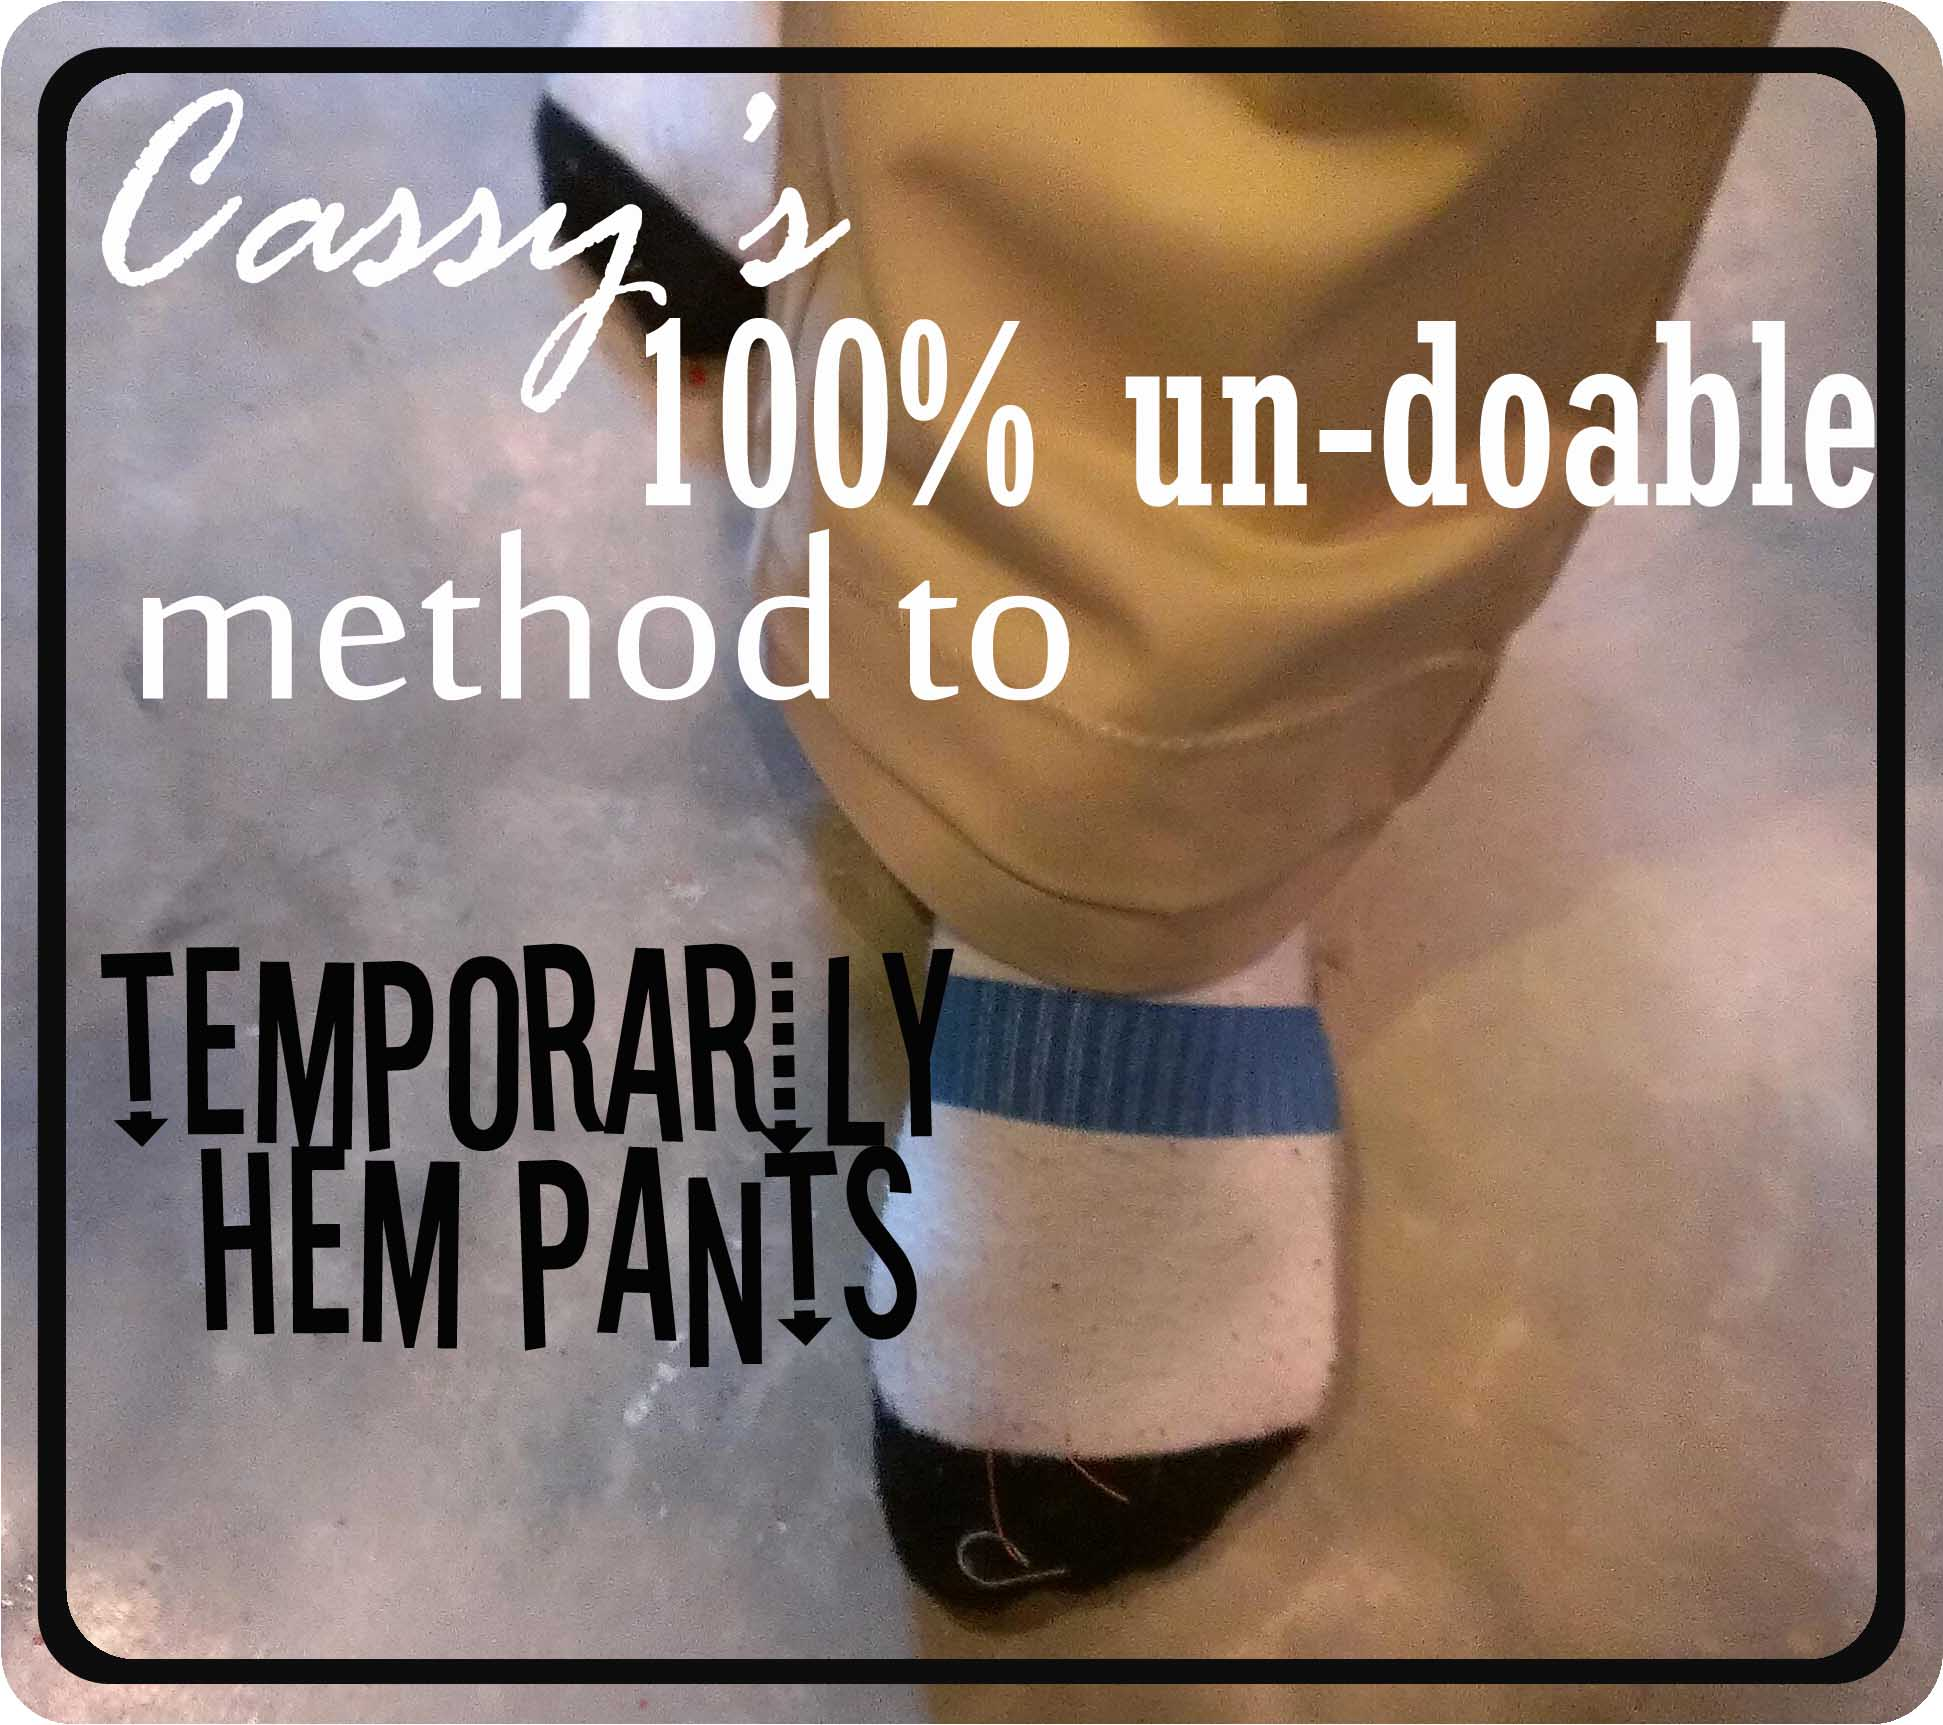 How to temporarily hem pants art in the attic studio cassys 100 un doable method to temporarily hem pants ccuart Image collections